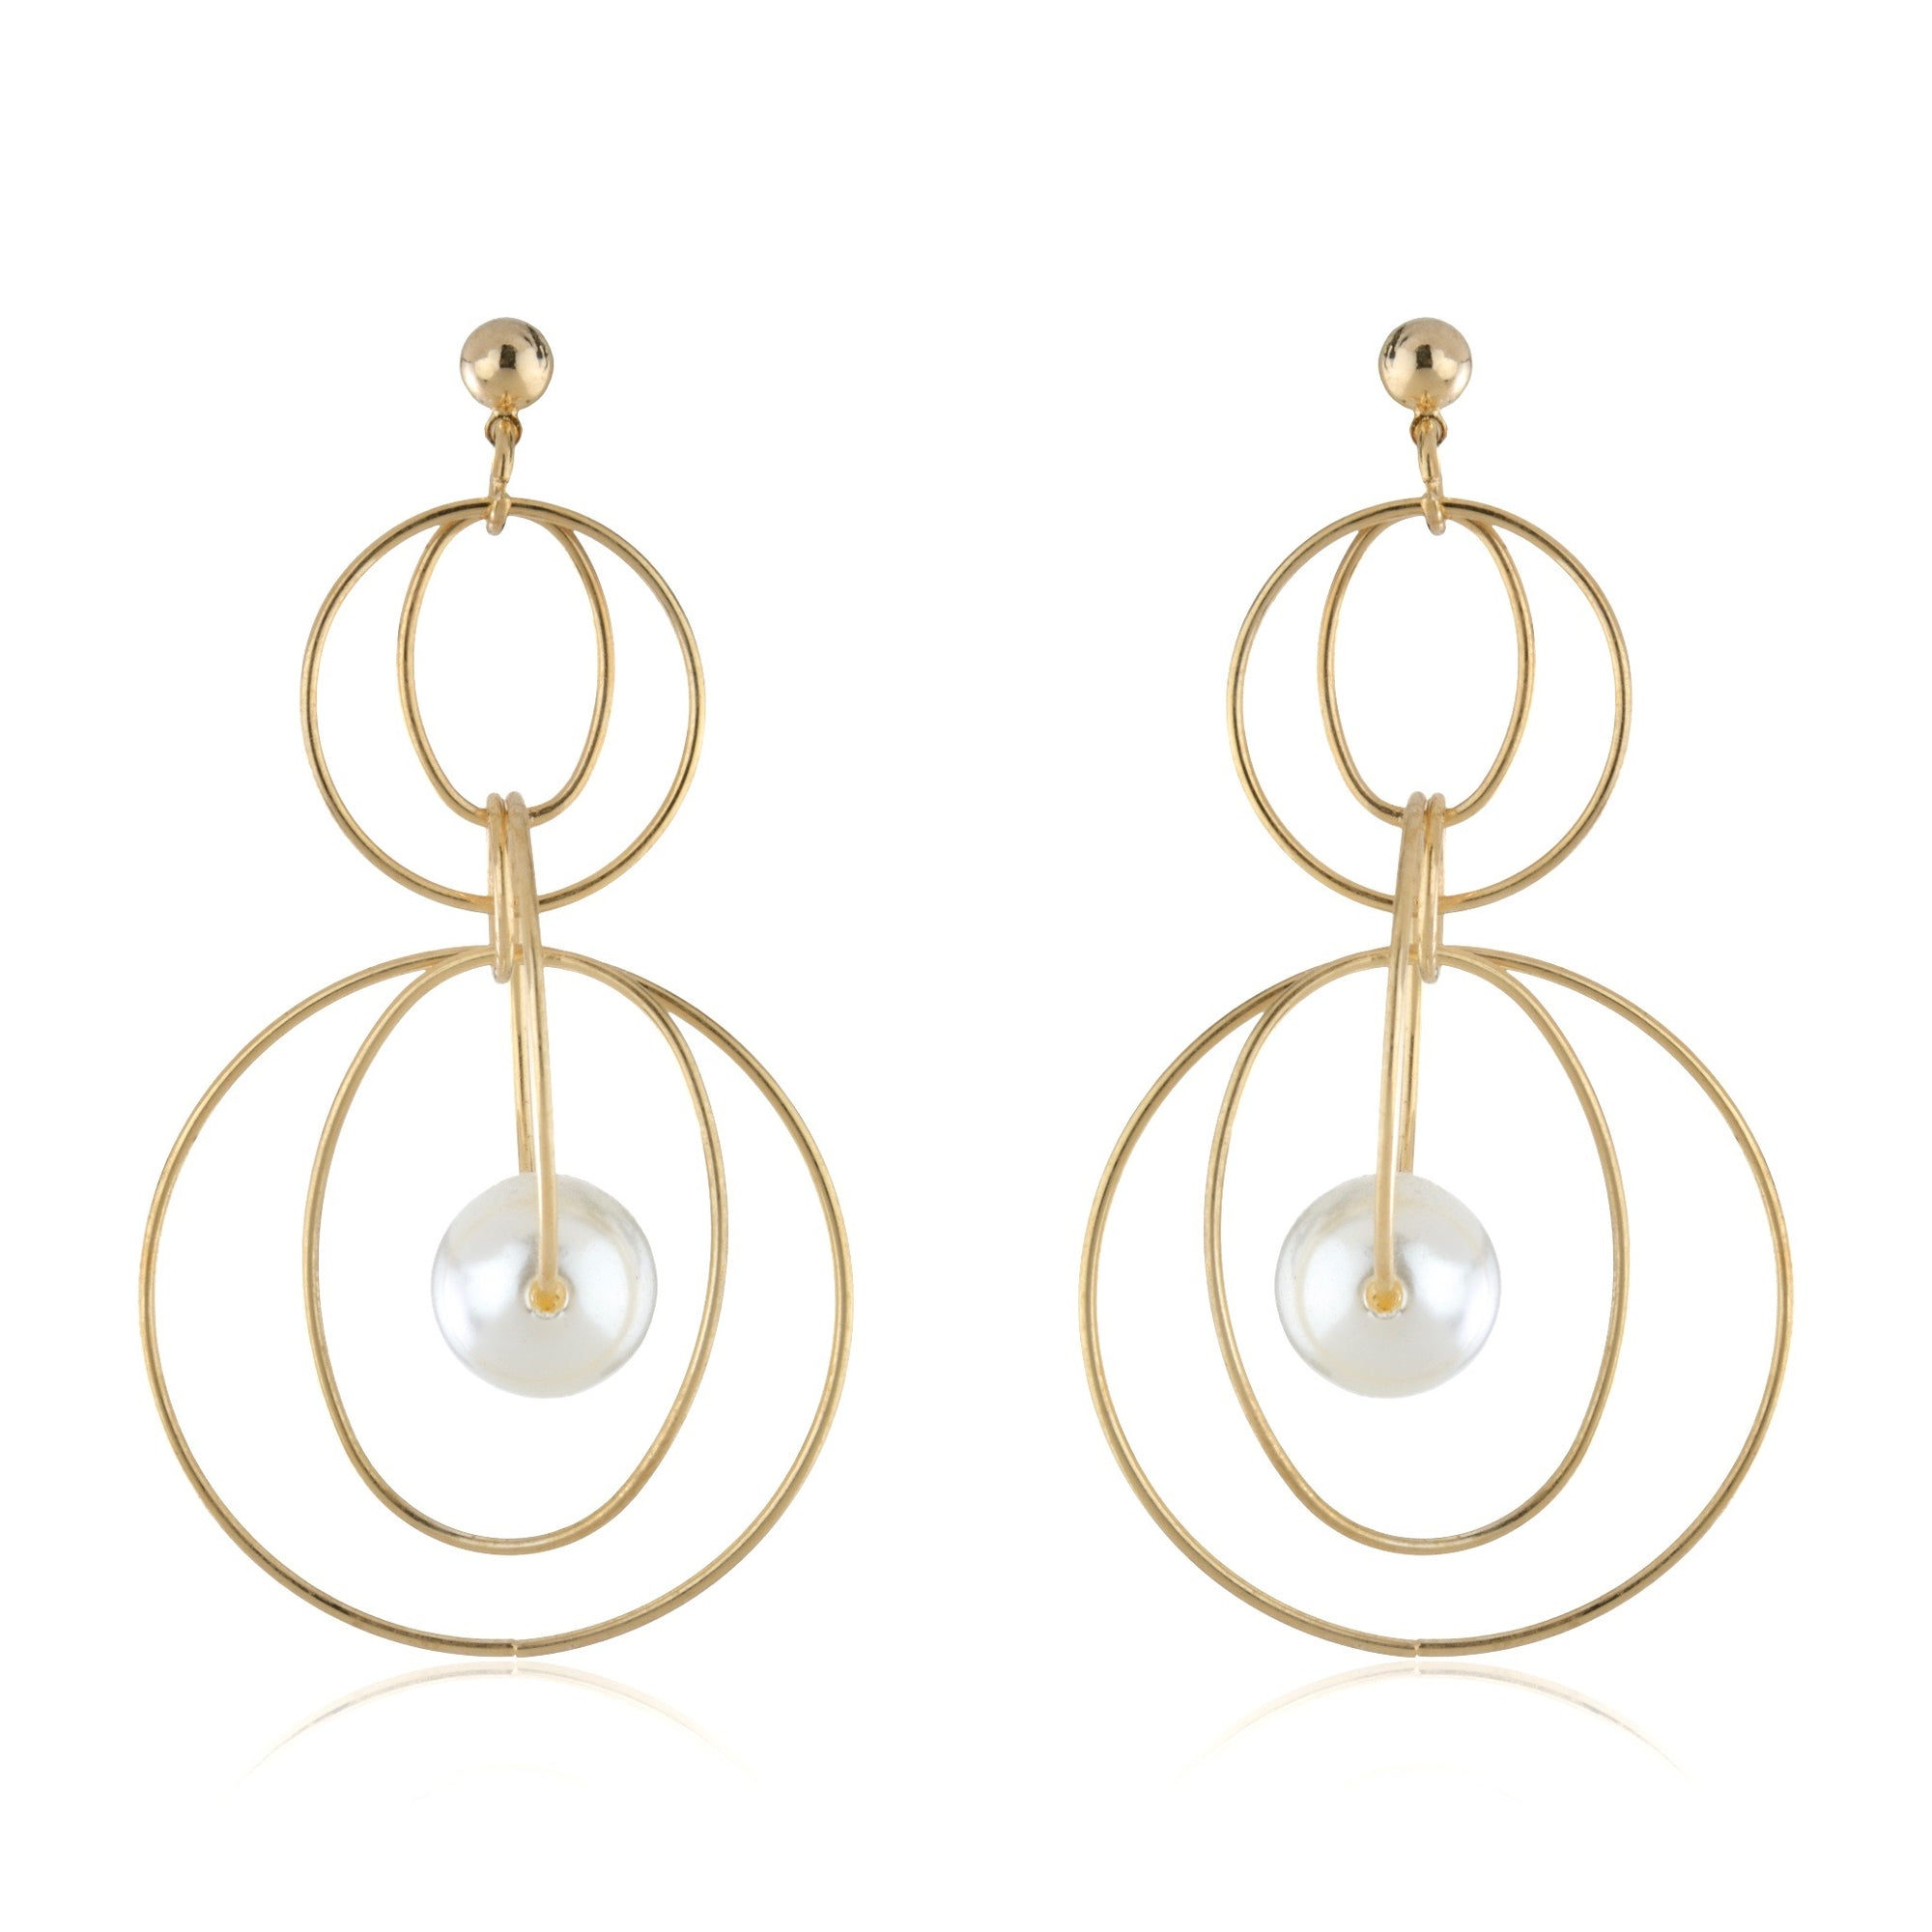 The Pearl Loop Circle Earrings - Gold